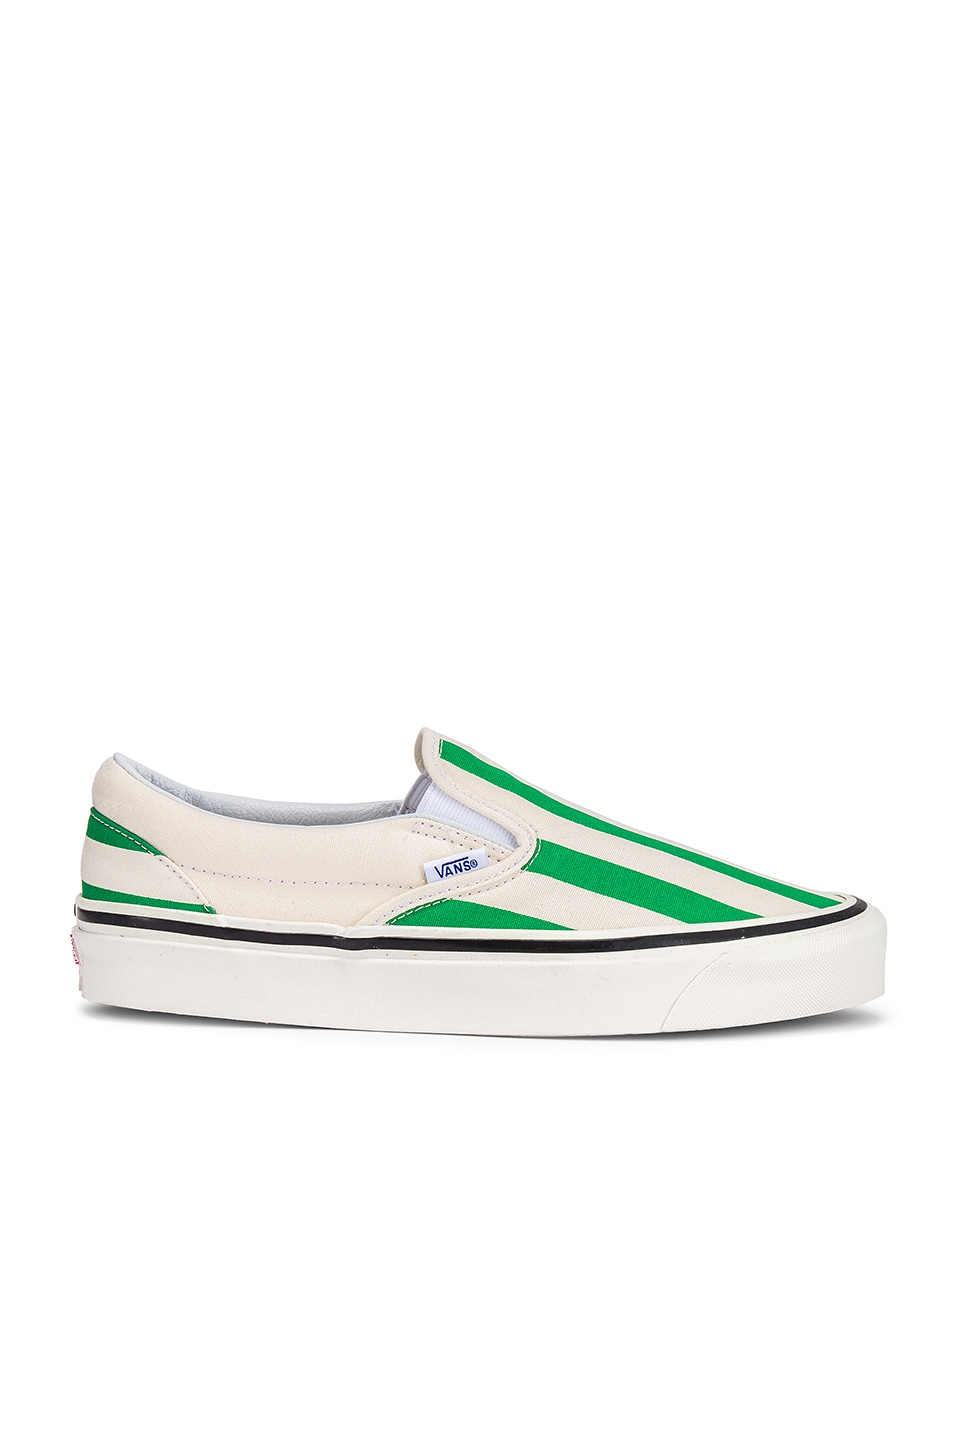 Vans Classic Slip-On 98 in OG White & OG Emerald